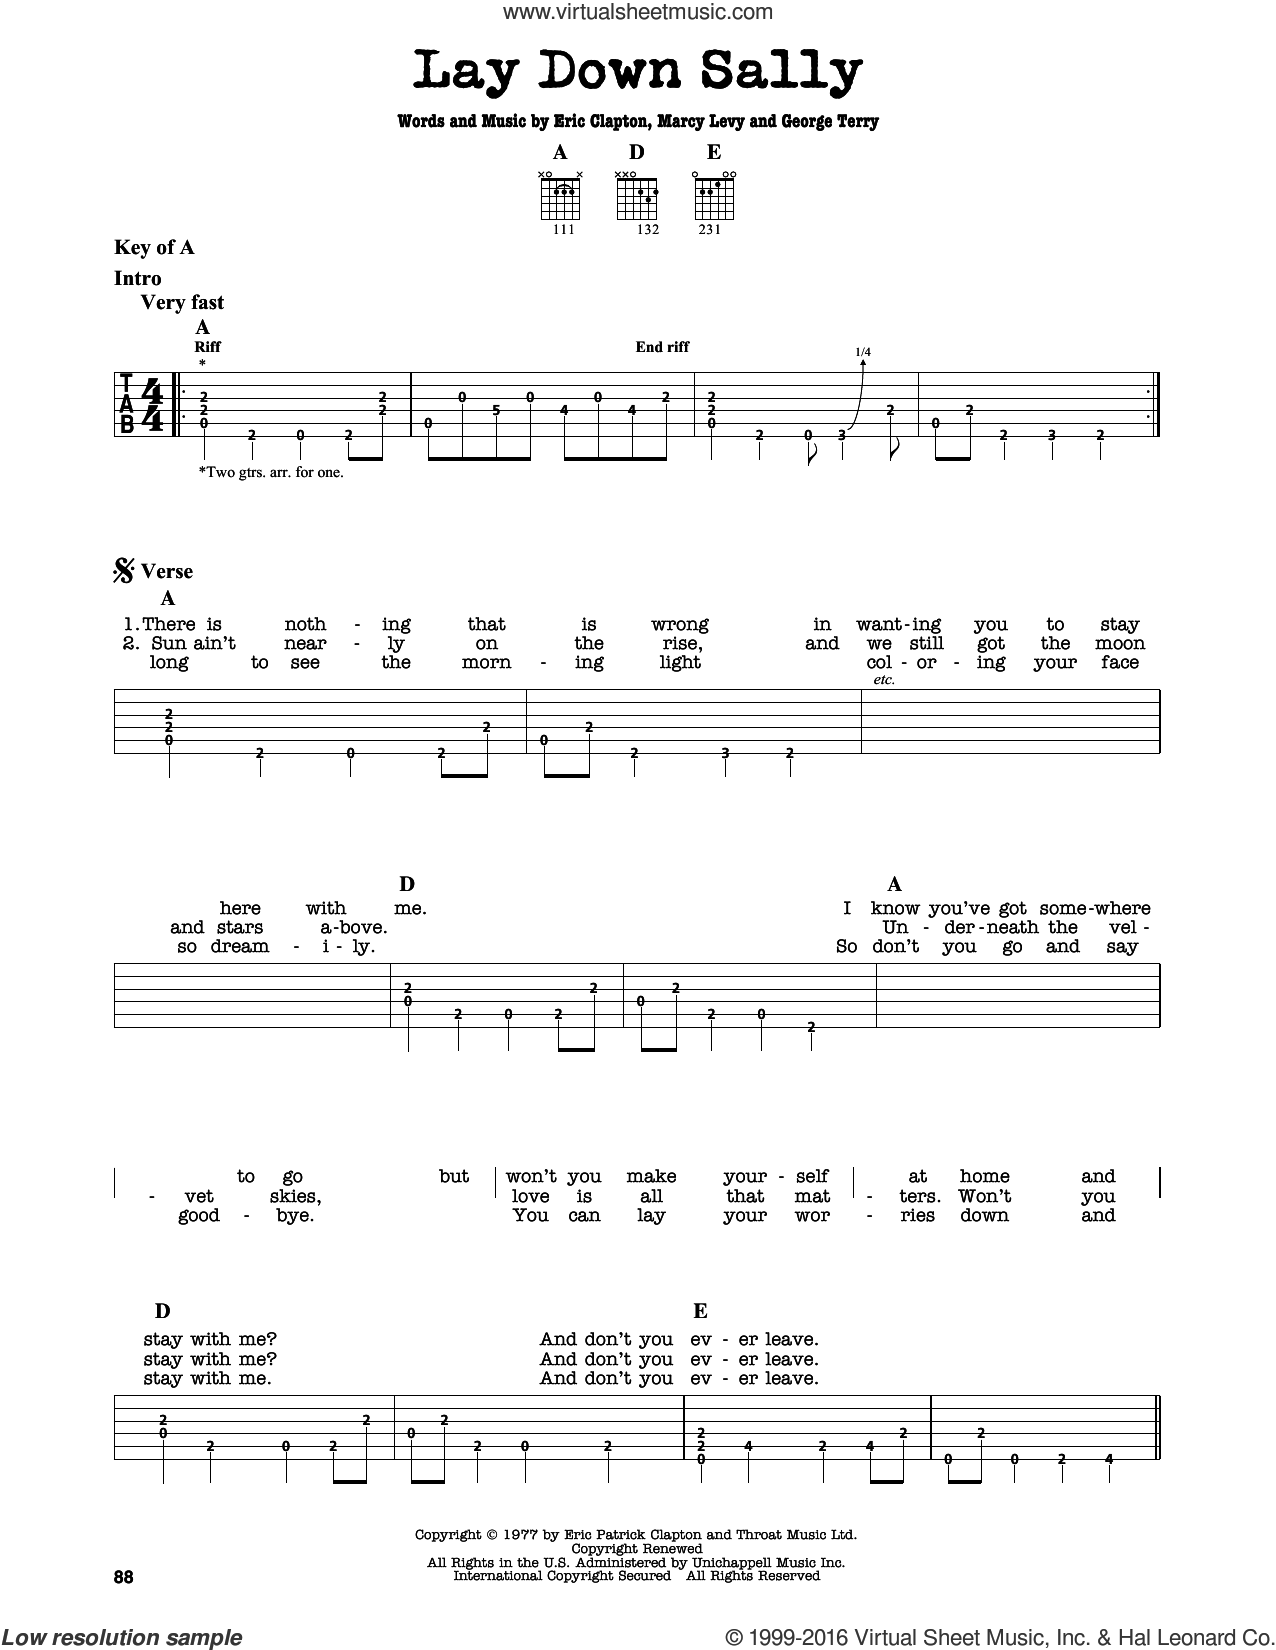 Lay Down Sally sheet music for guitar solo (lead sheet) by Eric Clapton, George Terry and Marcy Levy, intermediate guitar (lead sheet)